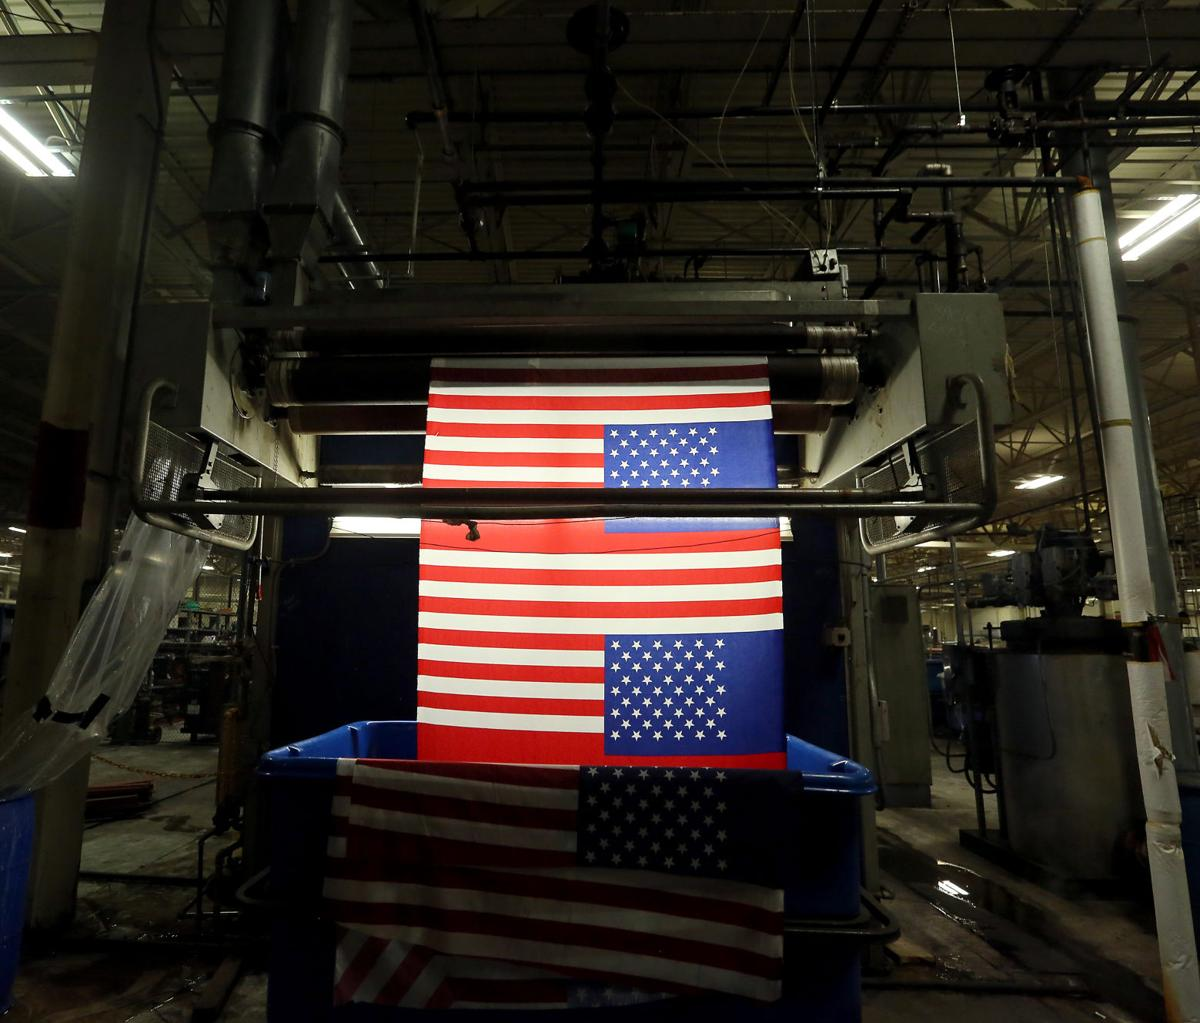 Made in the USA: Flag maker works with Wal-Mart to produce